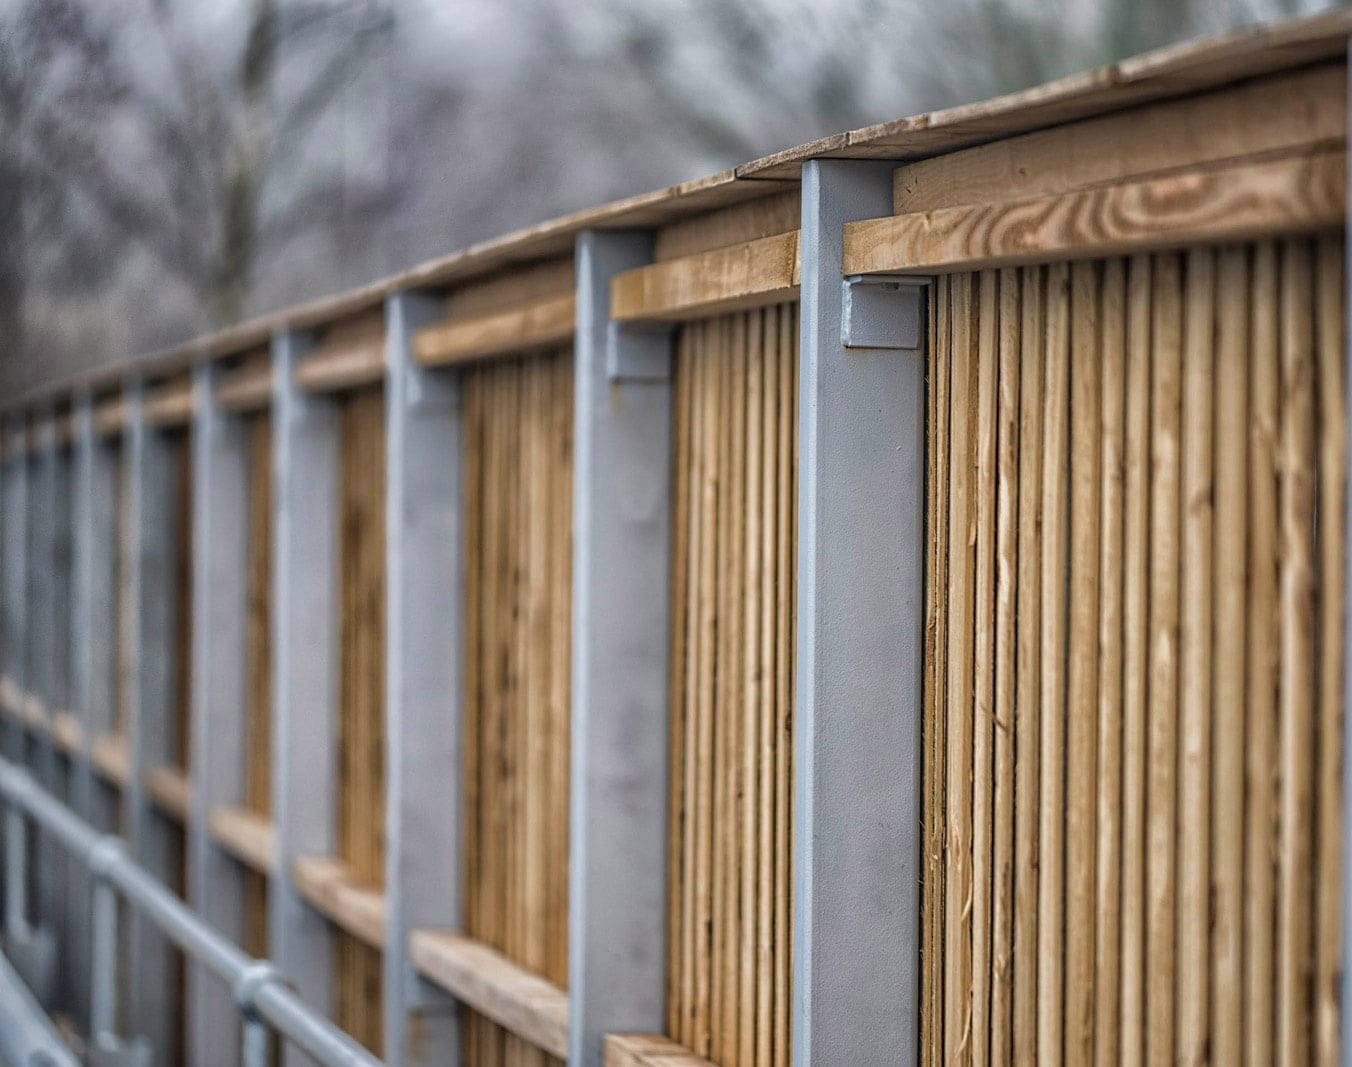 Turn your home into an oasis of serenity by acoustic fencing in Sydney